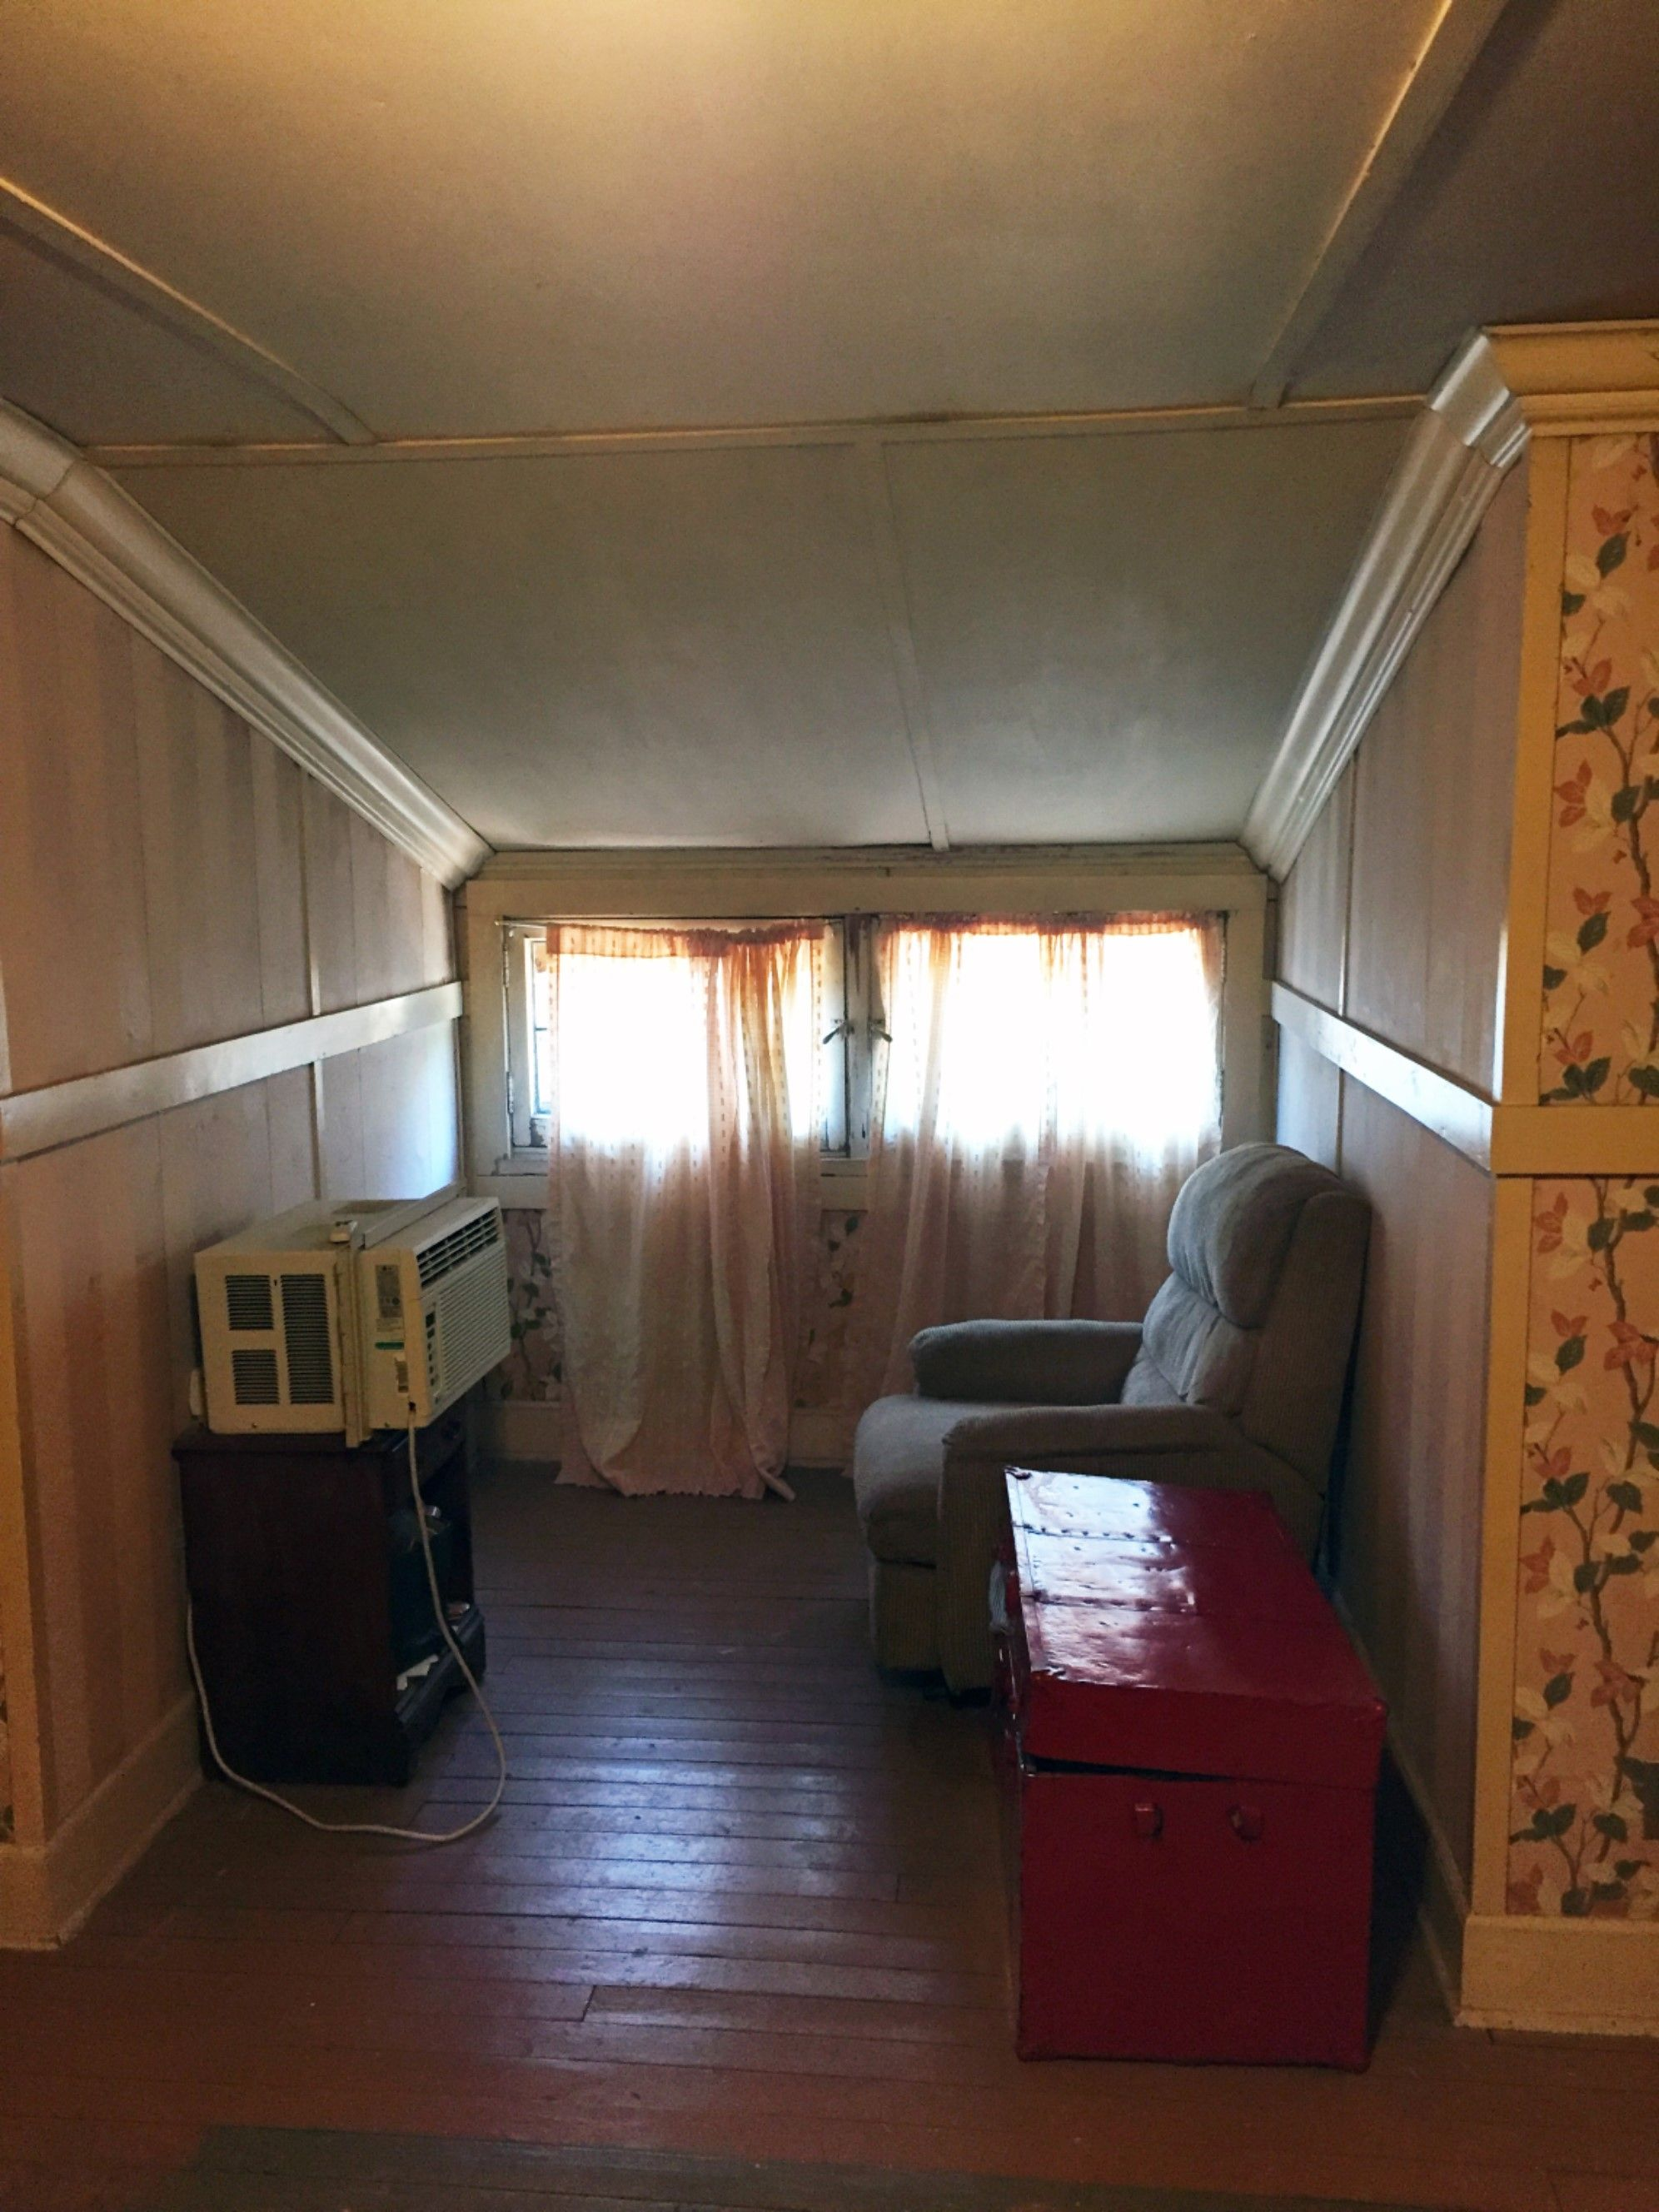 The Attic Nook Which Is Now An Extension Of The Master Bedroom